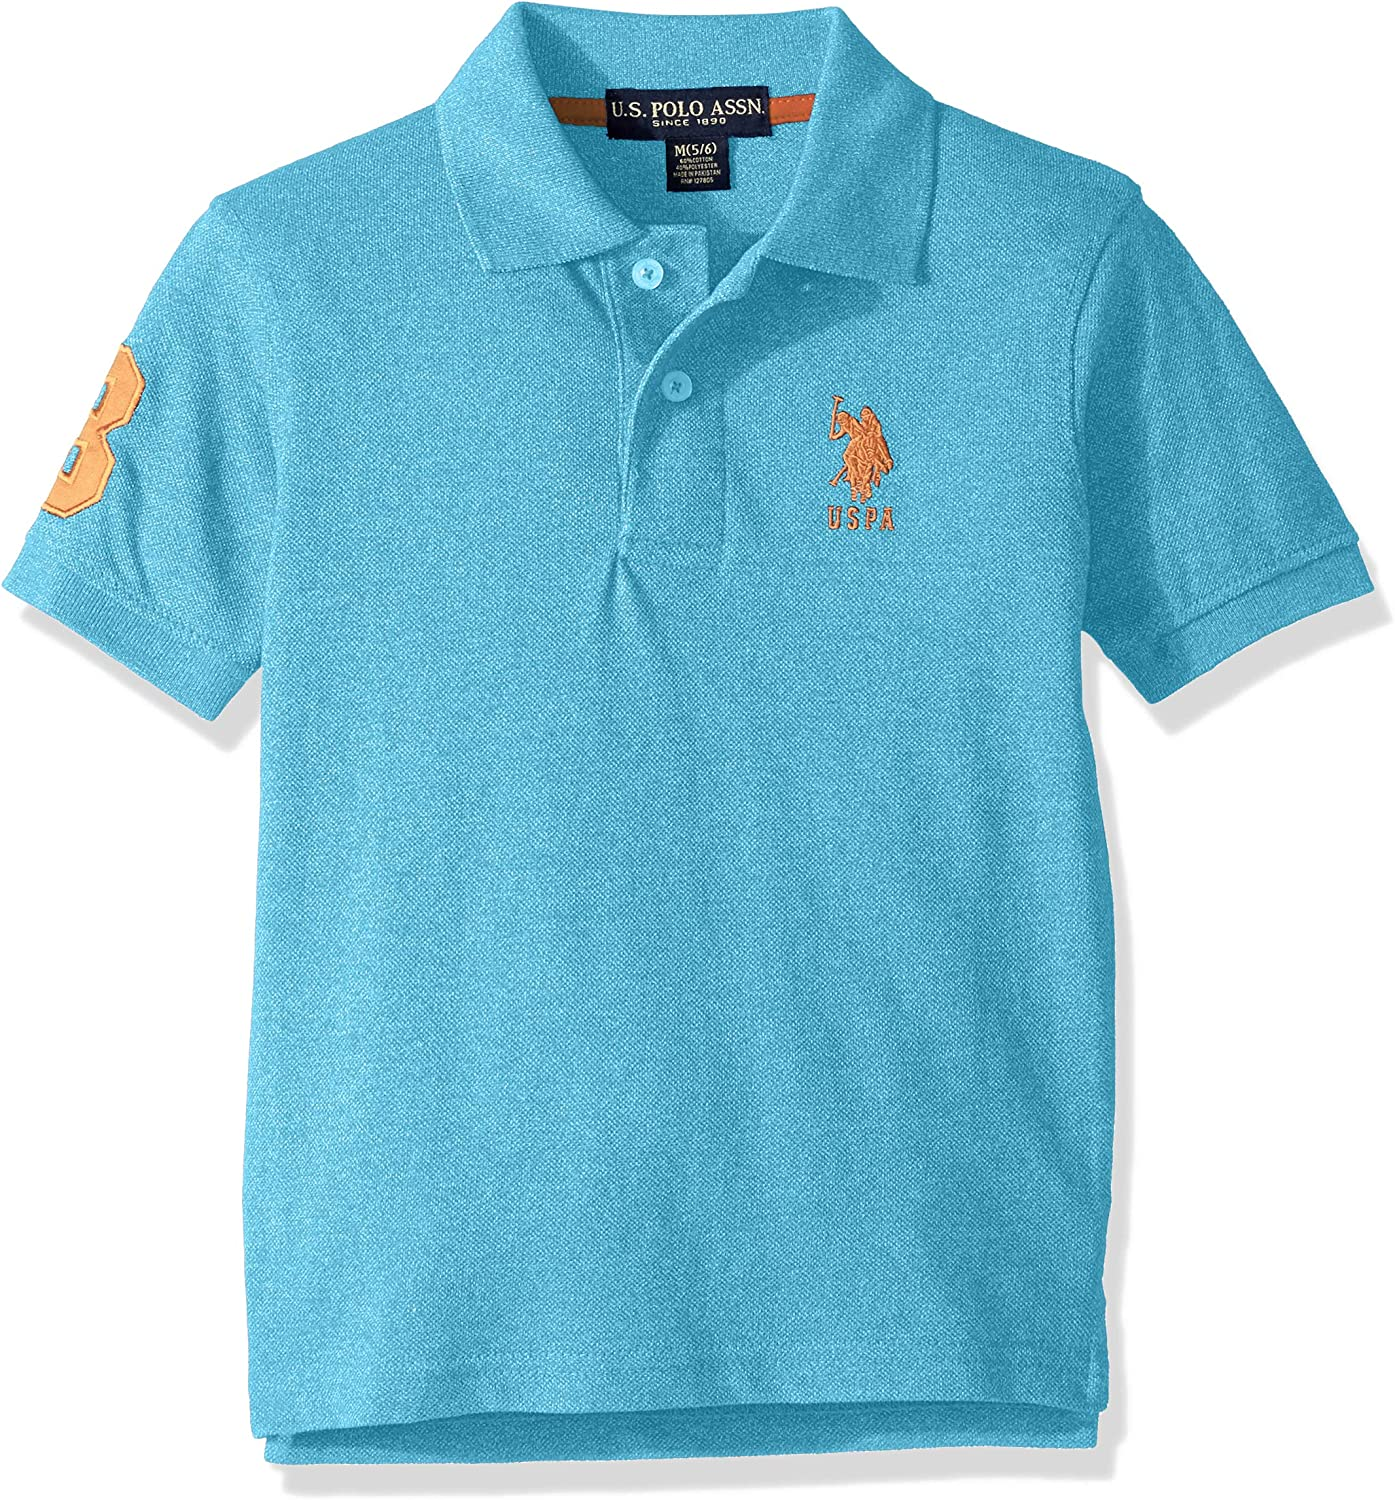 U.S Boys Short Sleeve Marled Pique Polo Shirt Polo Assn